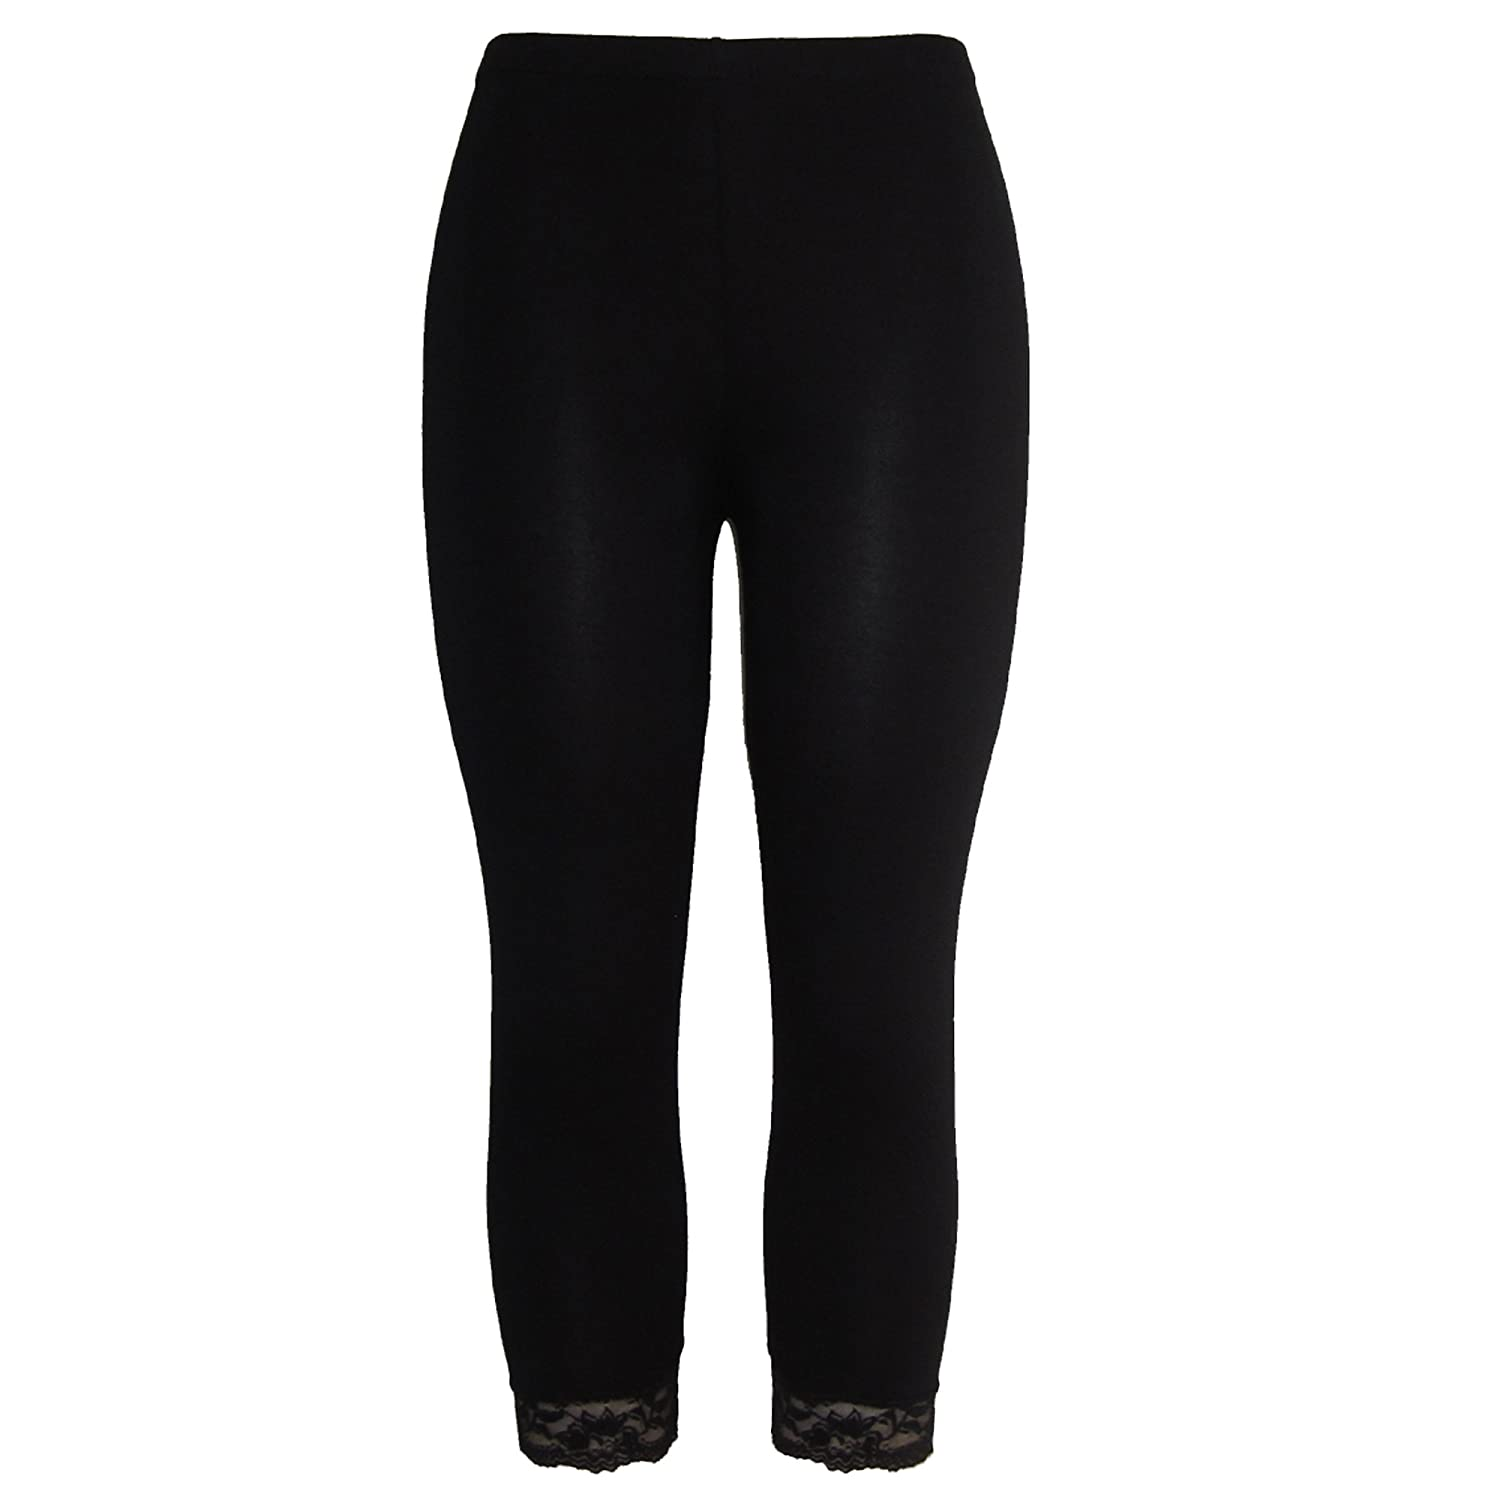 3590c7dd2d1fe1 Body2Body Women's Bottom Lace 3/4 Ladies Cropped Legging in Assorted Color  & Sizes: Amazon.co.uk: Clothing